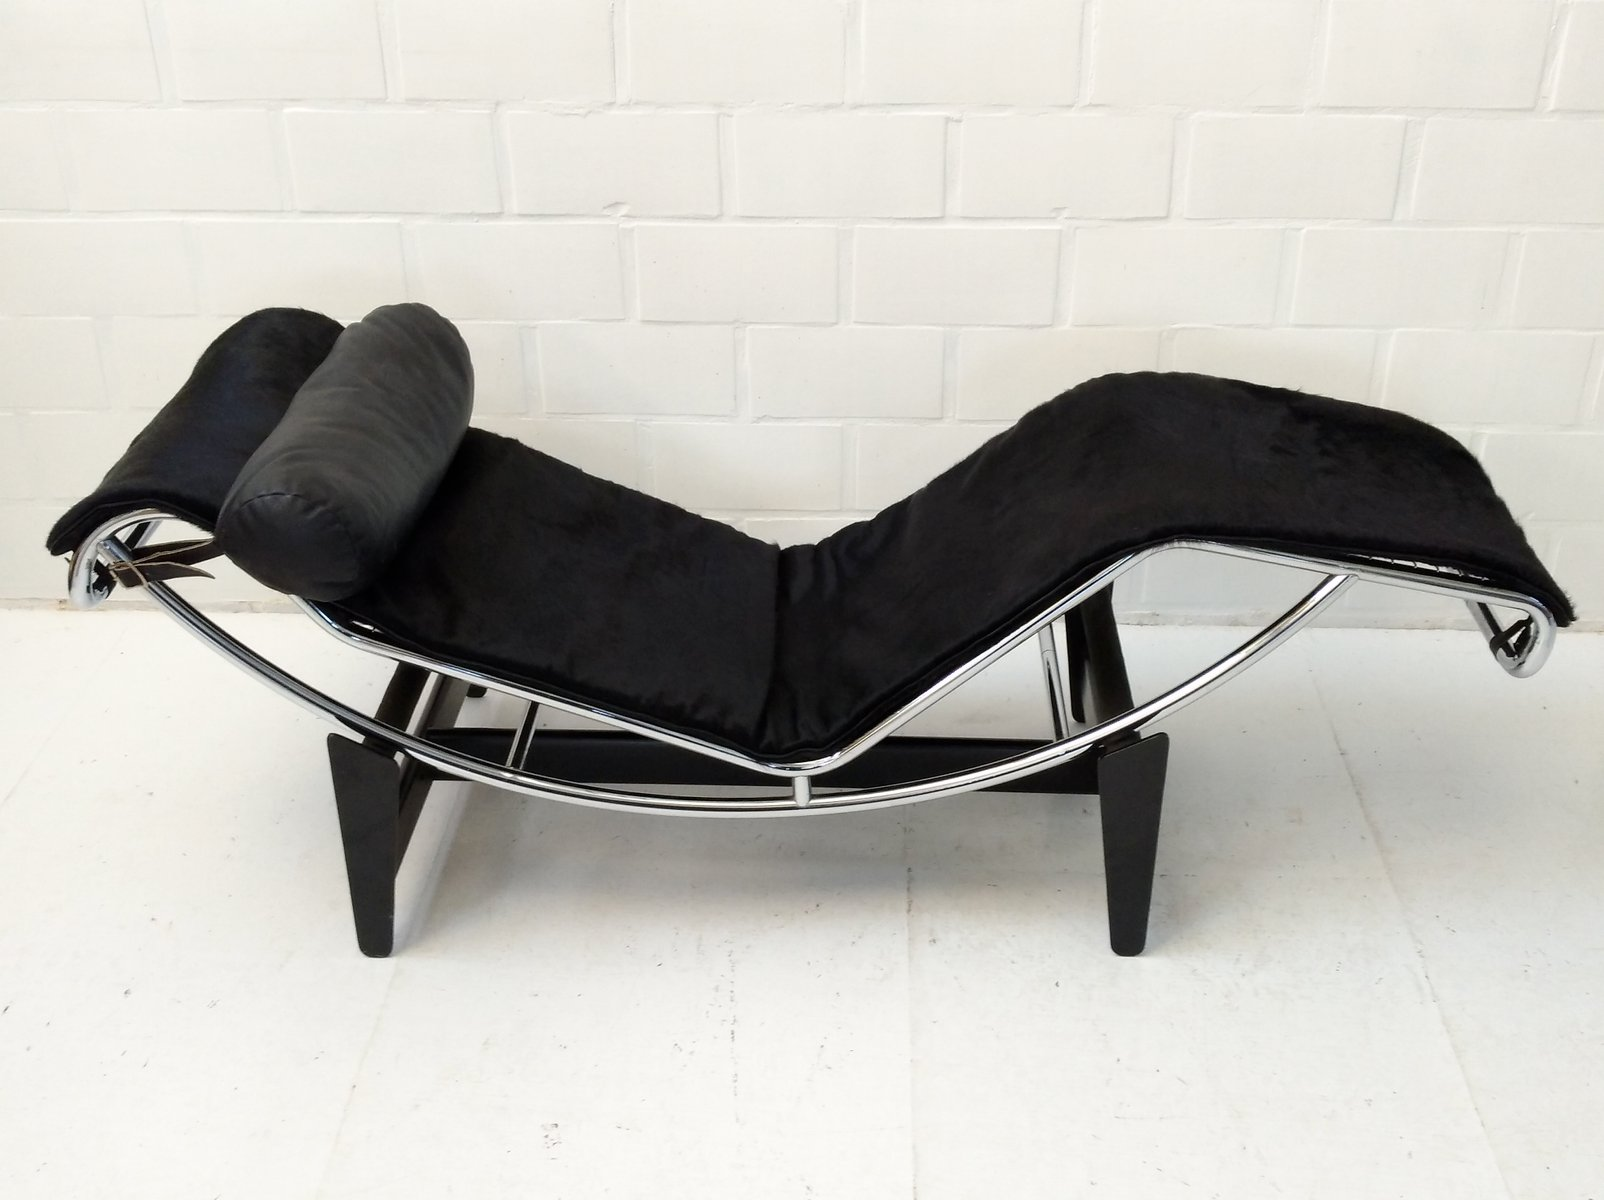 Early lc4 chaise longue by le corbusier perriand for Chaise longue for sale uk